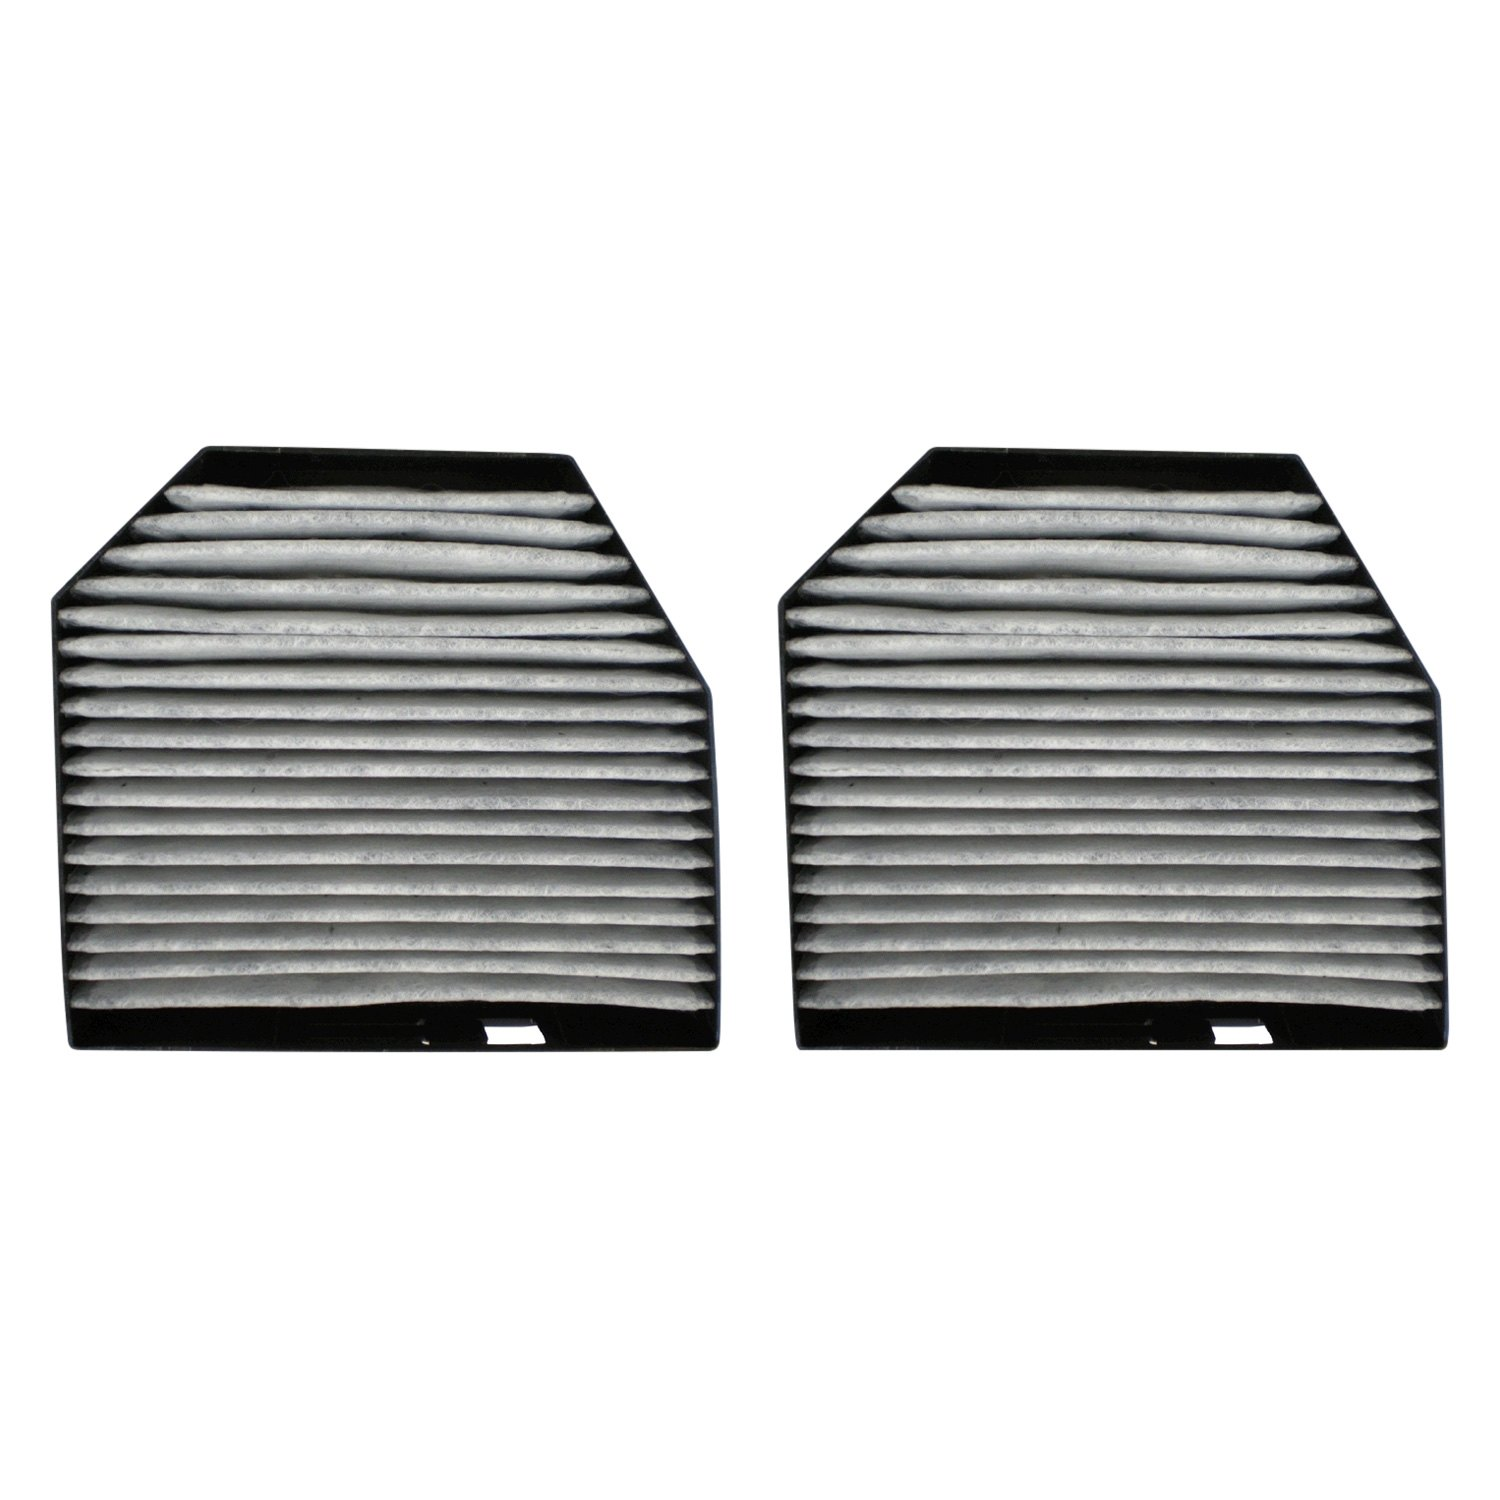 acdelco toyota camry 2010 professional cabin air filter. Black Bedroom Furniture Sets. Home Design Ideas